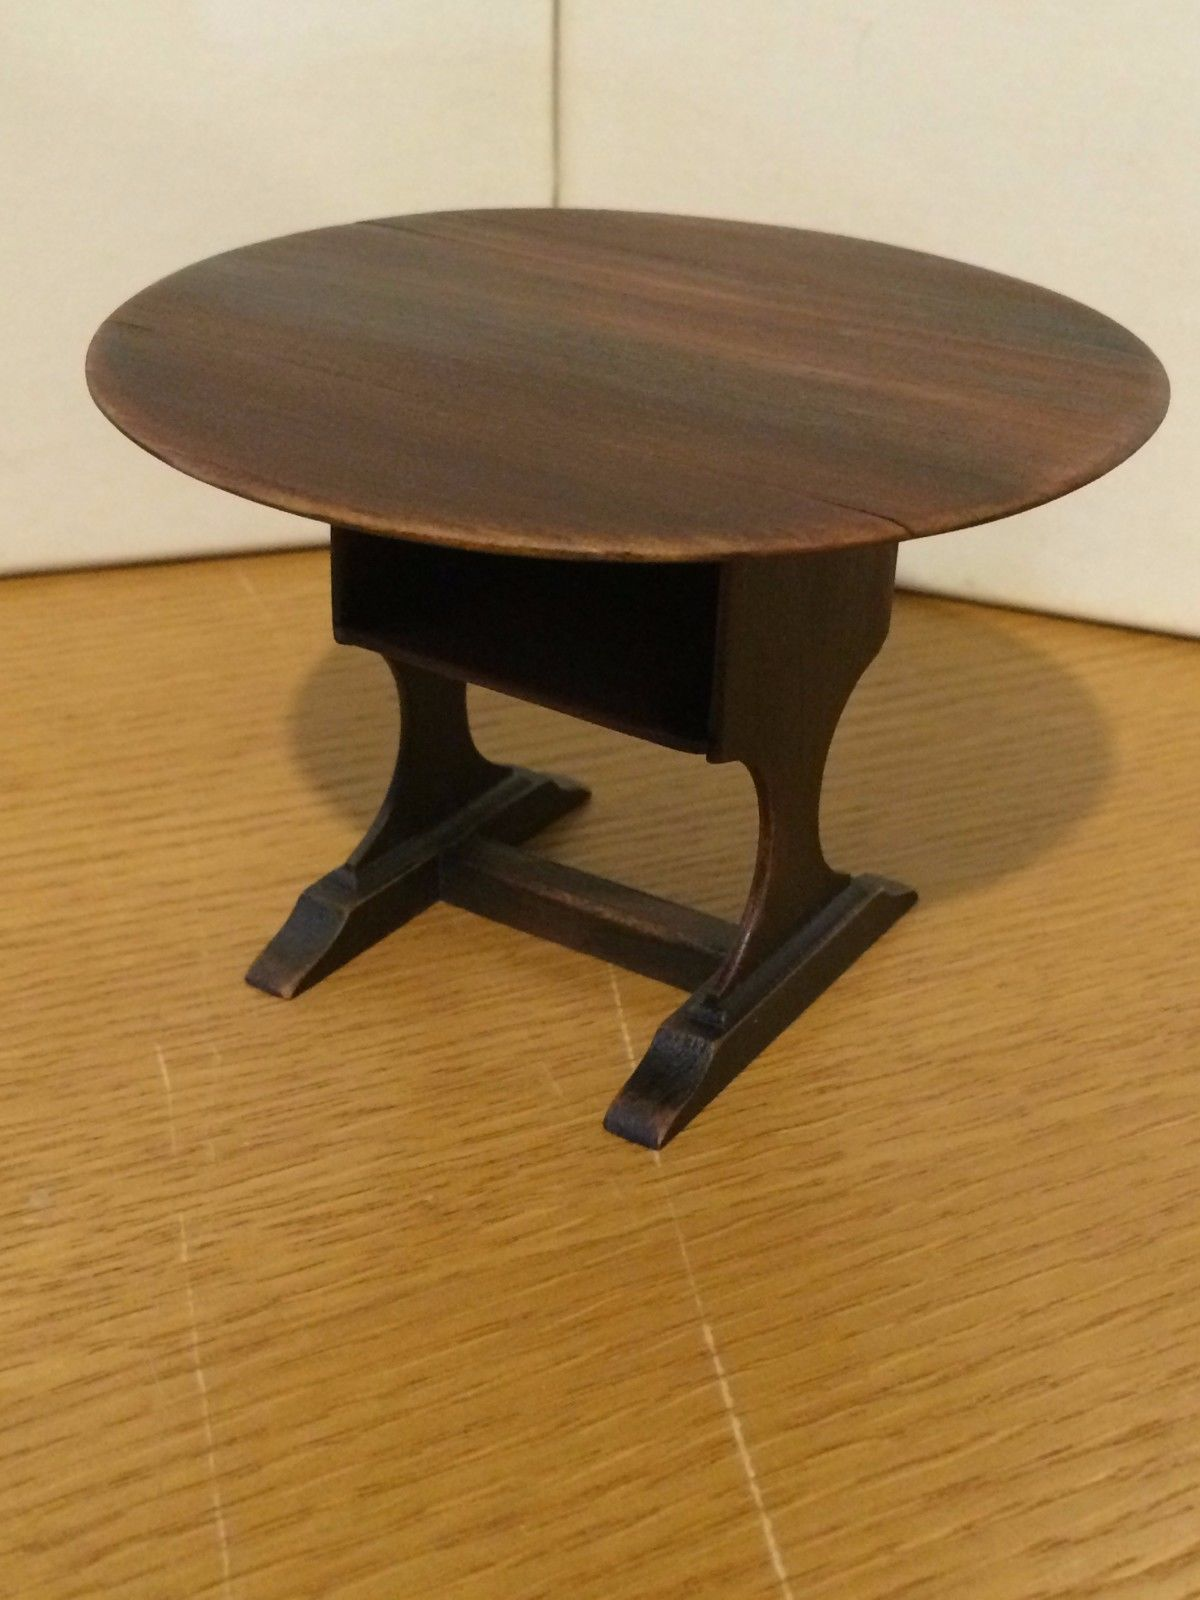 David White - painted distressed tilt-top table